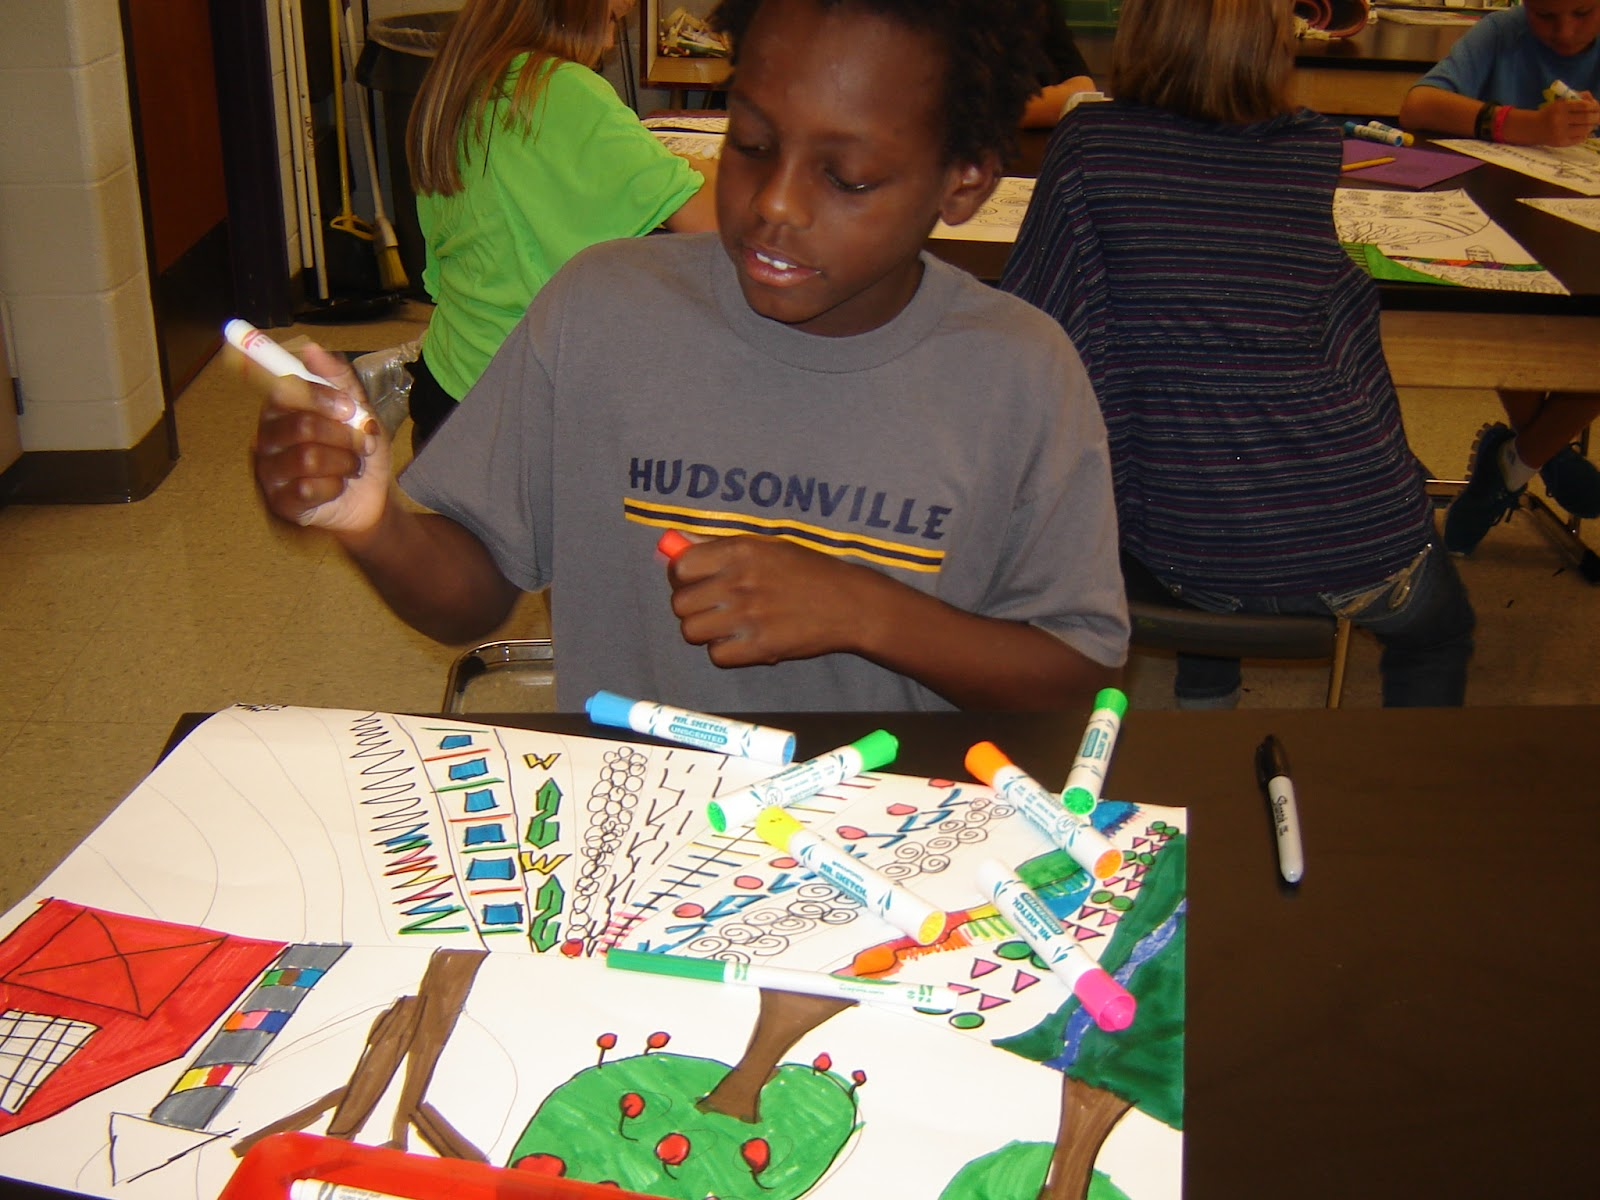 science clipart, crystal gems rocks, painting effects, projects easy crafts, salvador elementary, lessons flowers, on 4th grade art landscape